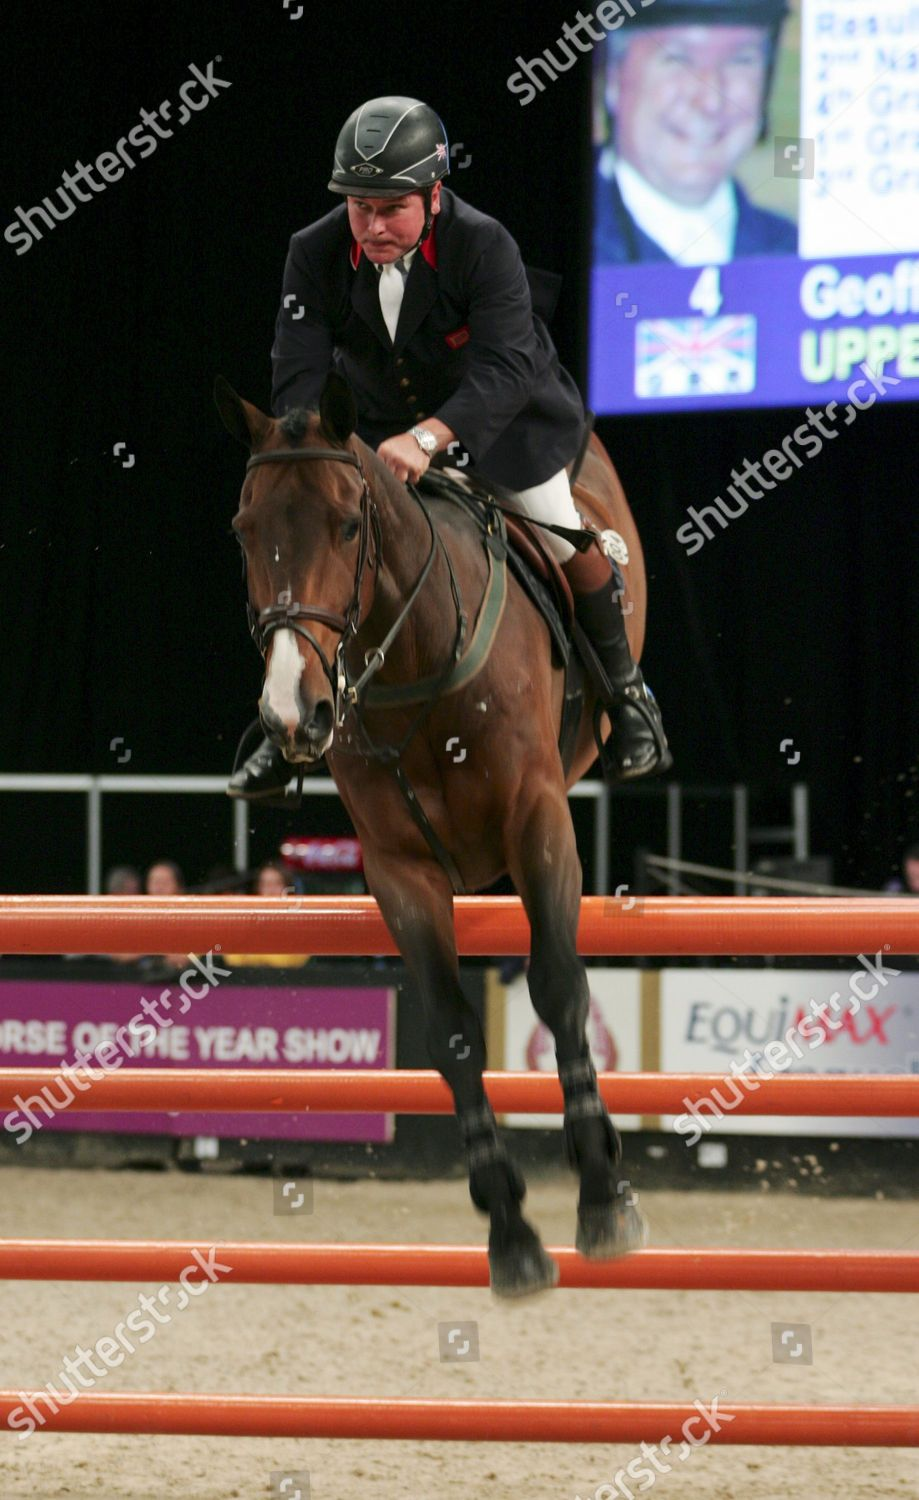 Geoff Billington GBR riding Uppercut Sky Sports Editorial Stock